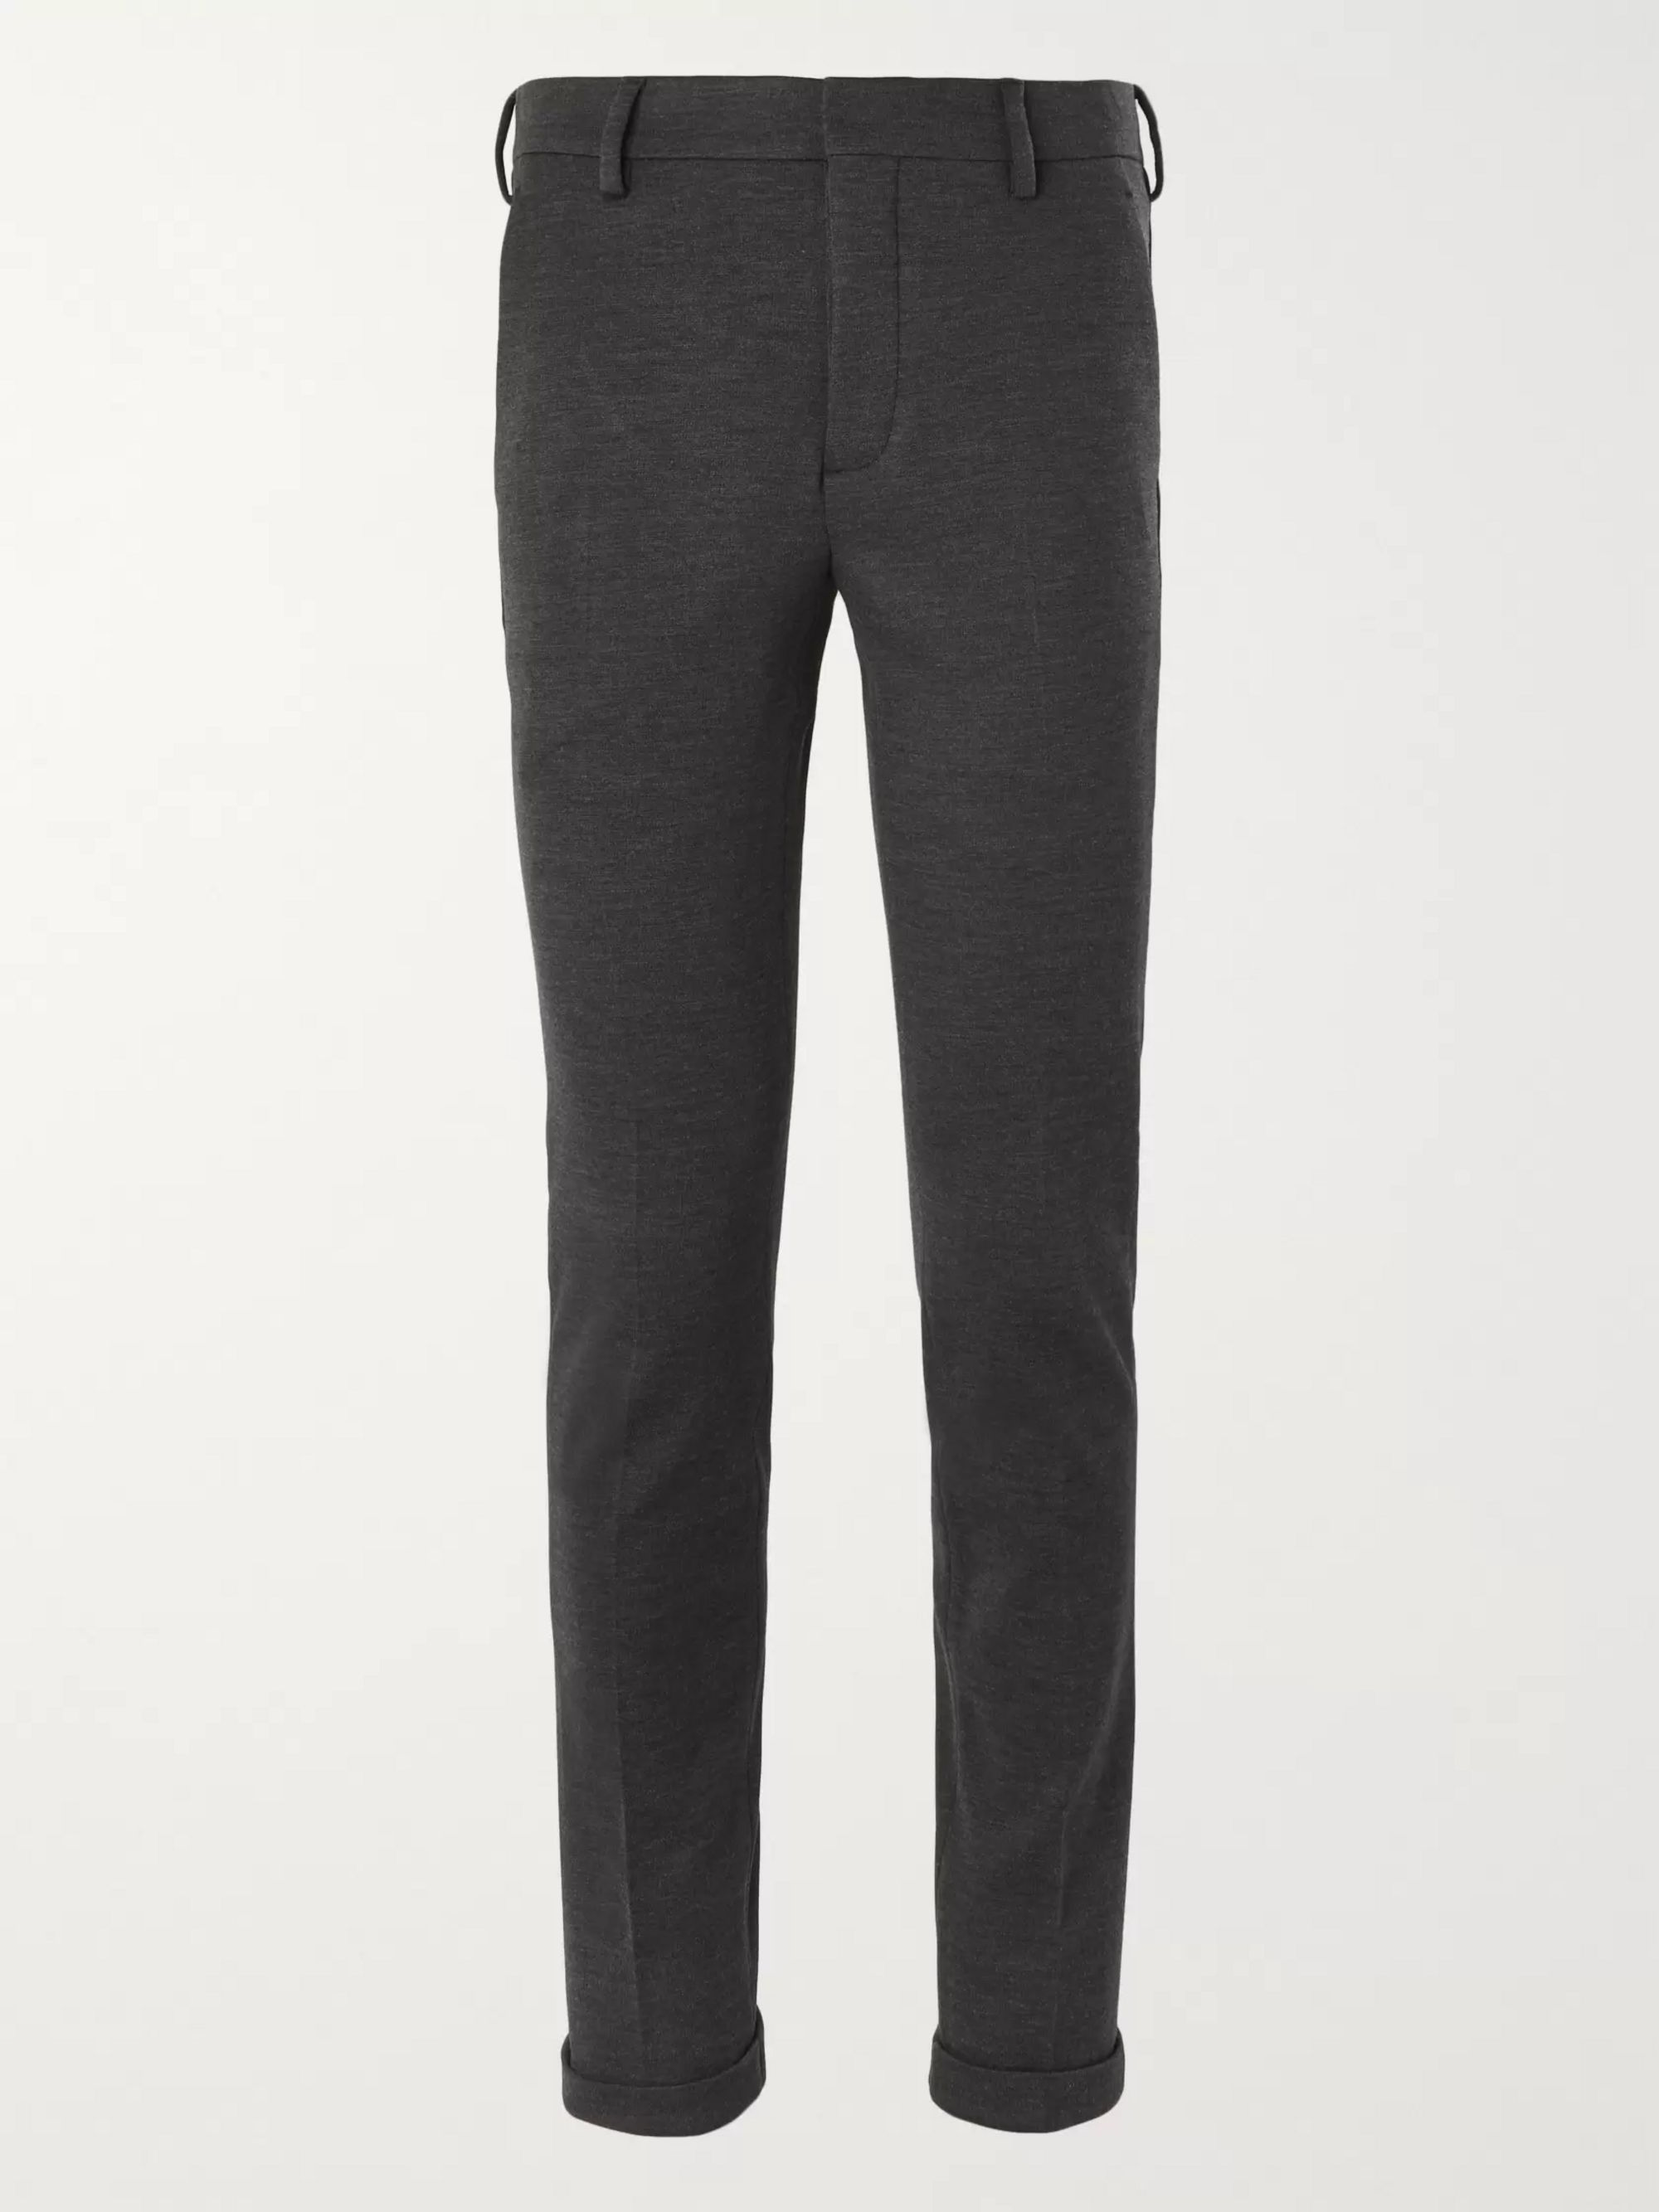 Prada Charcoal Slim-Fit Virgin Wool-Jersey Suit Trousers